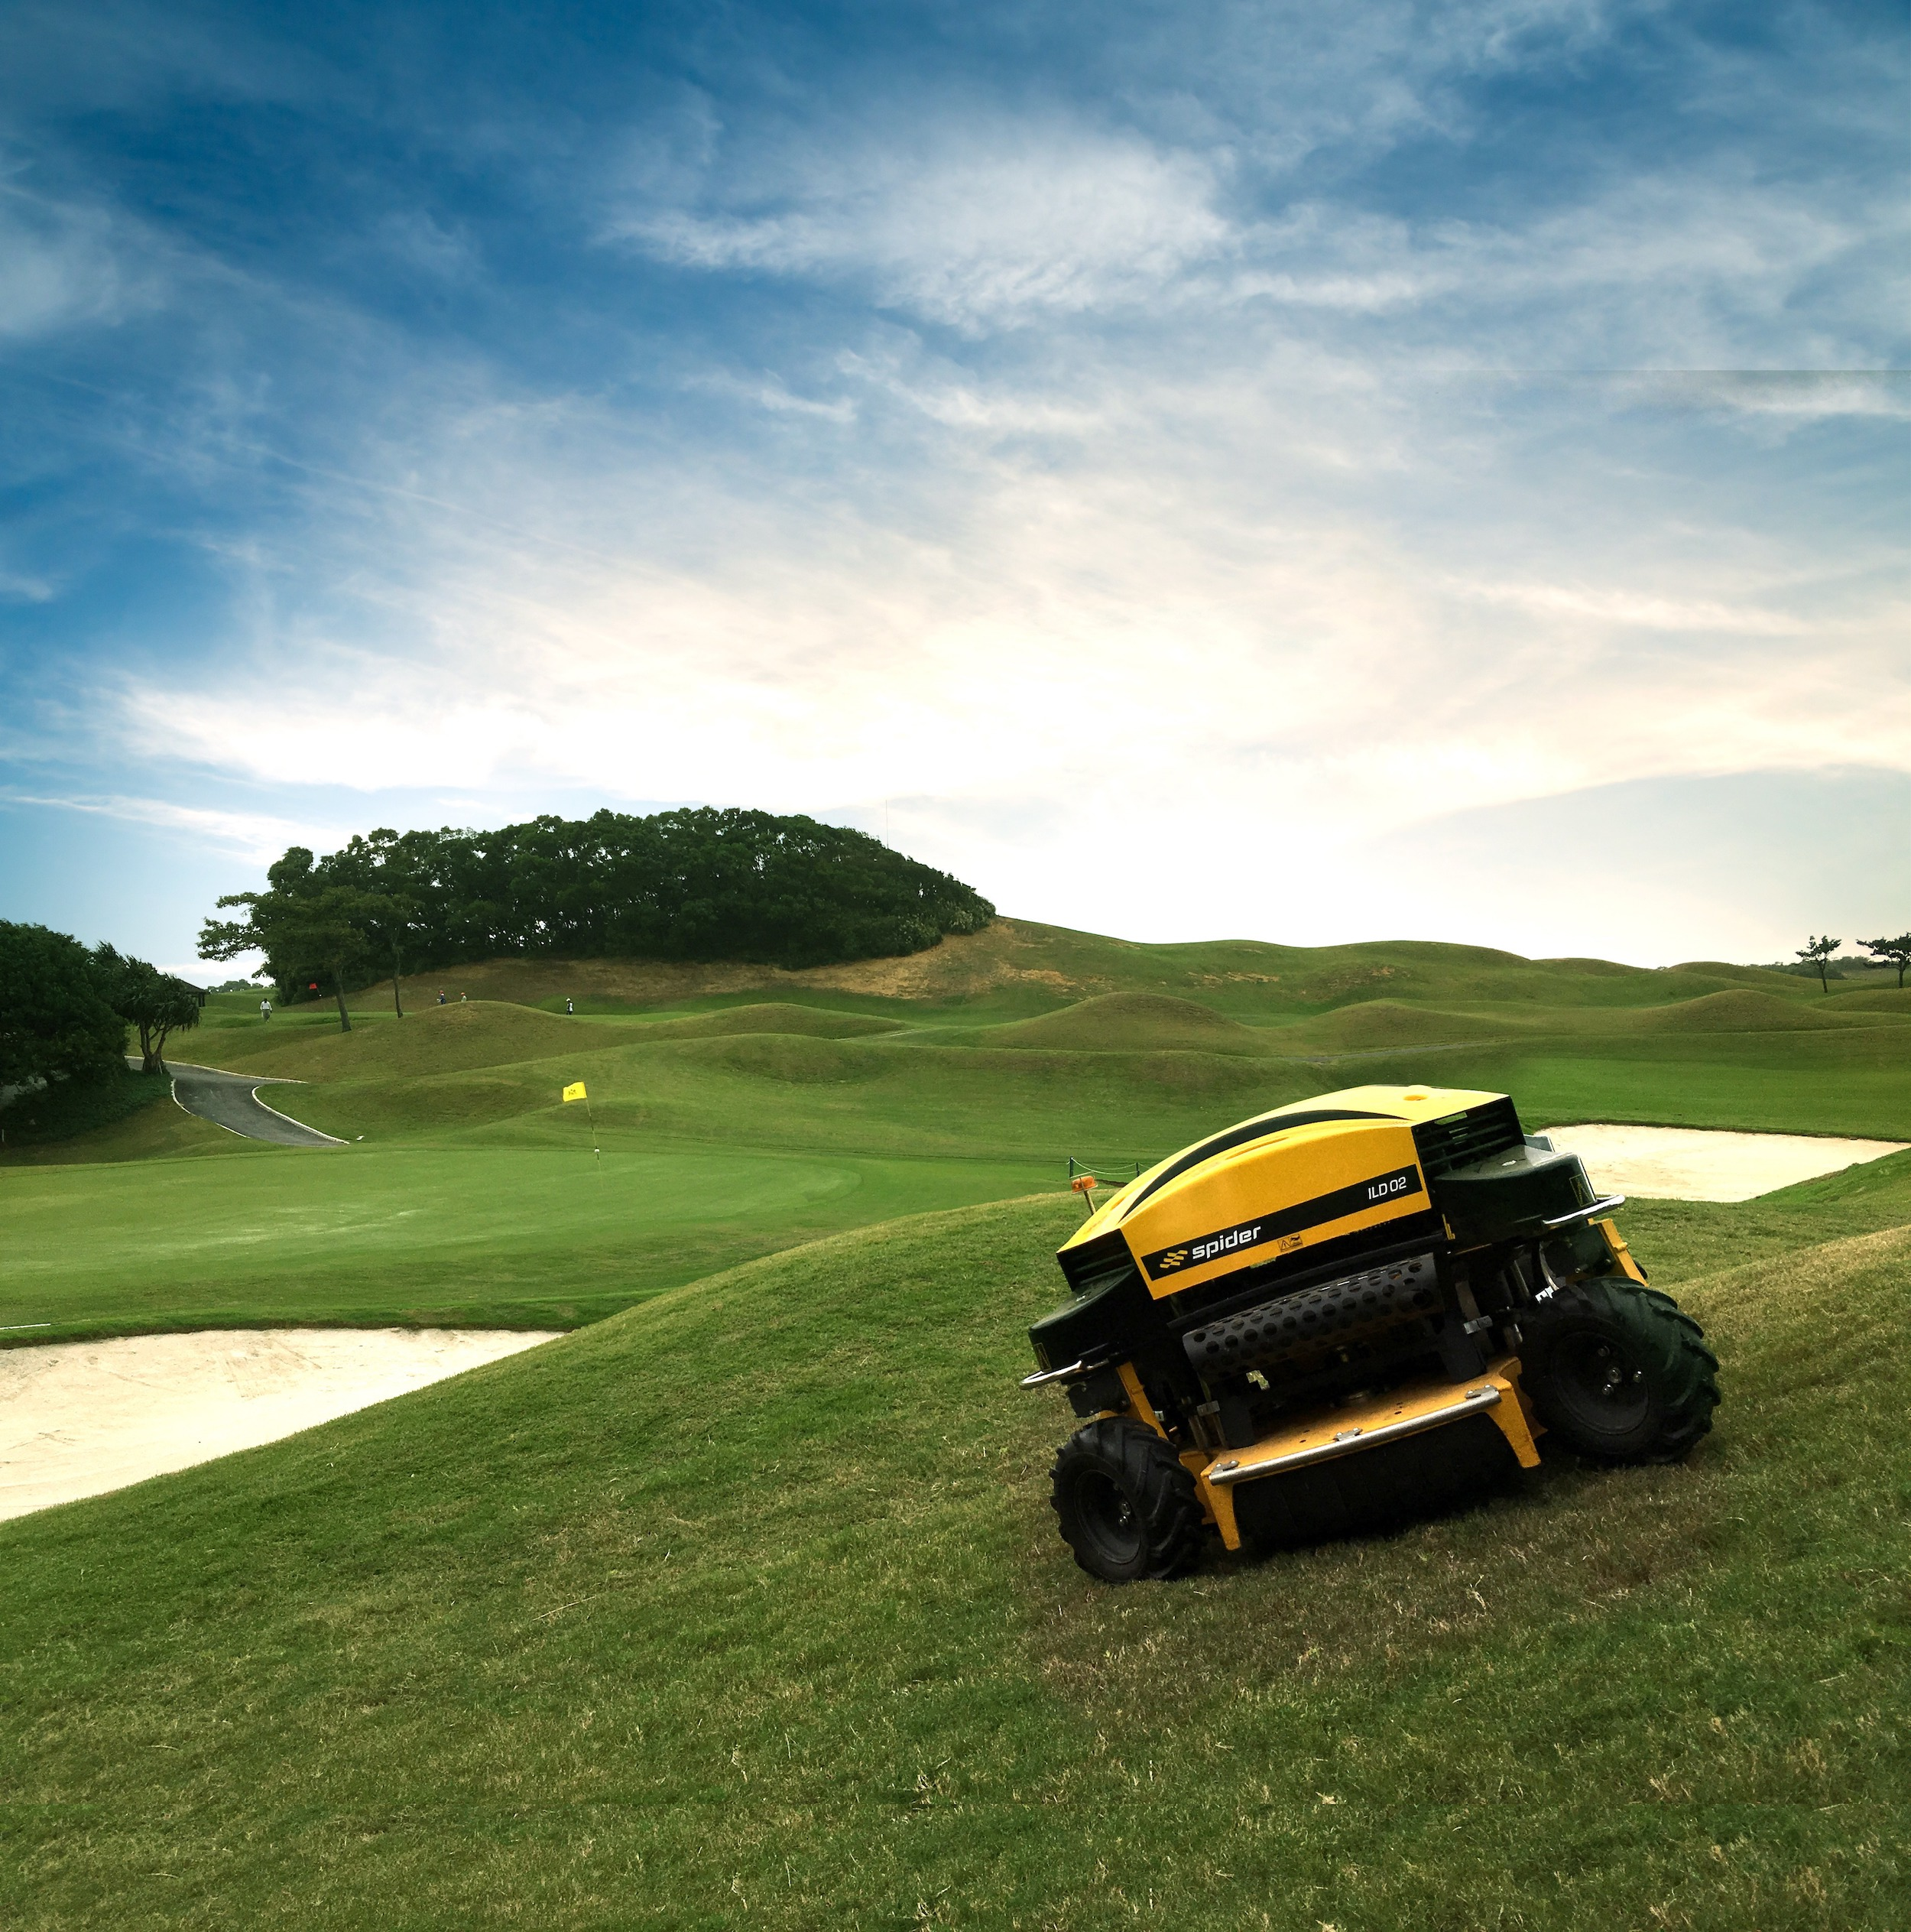 The Spider ILD02 Remote Control Slope Mower Mowing Grass on a Golf Course on a Sunny Day